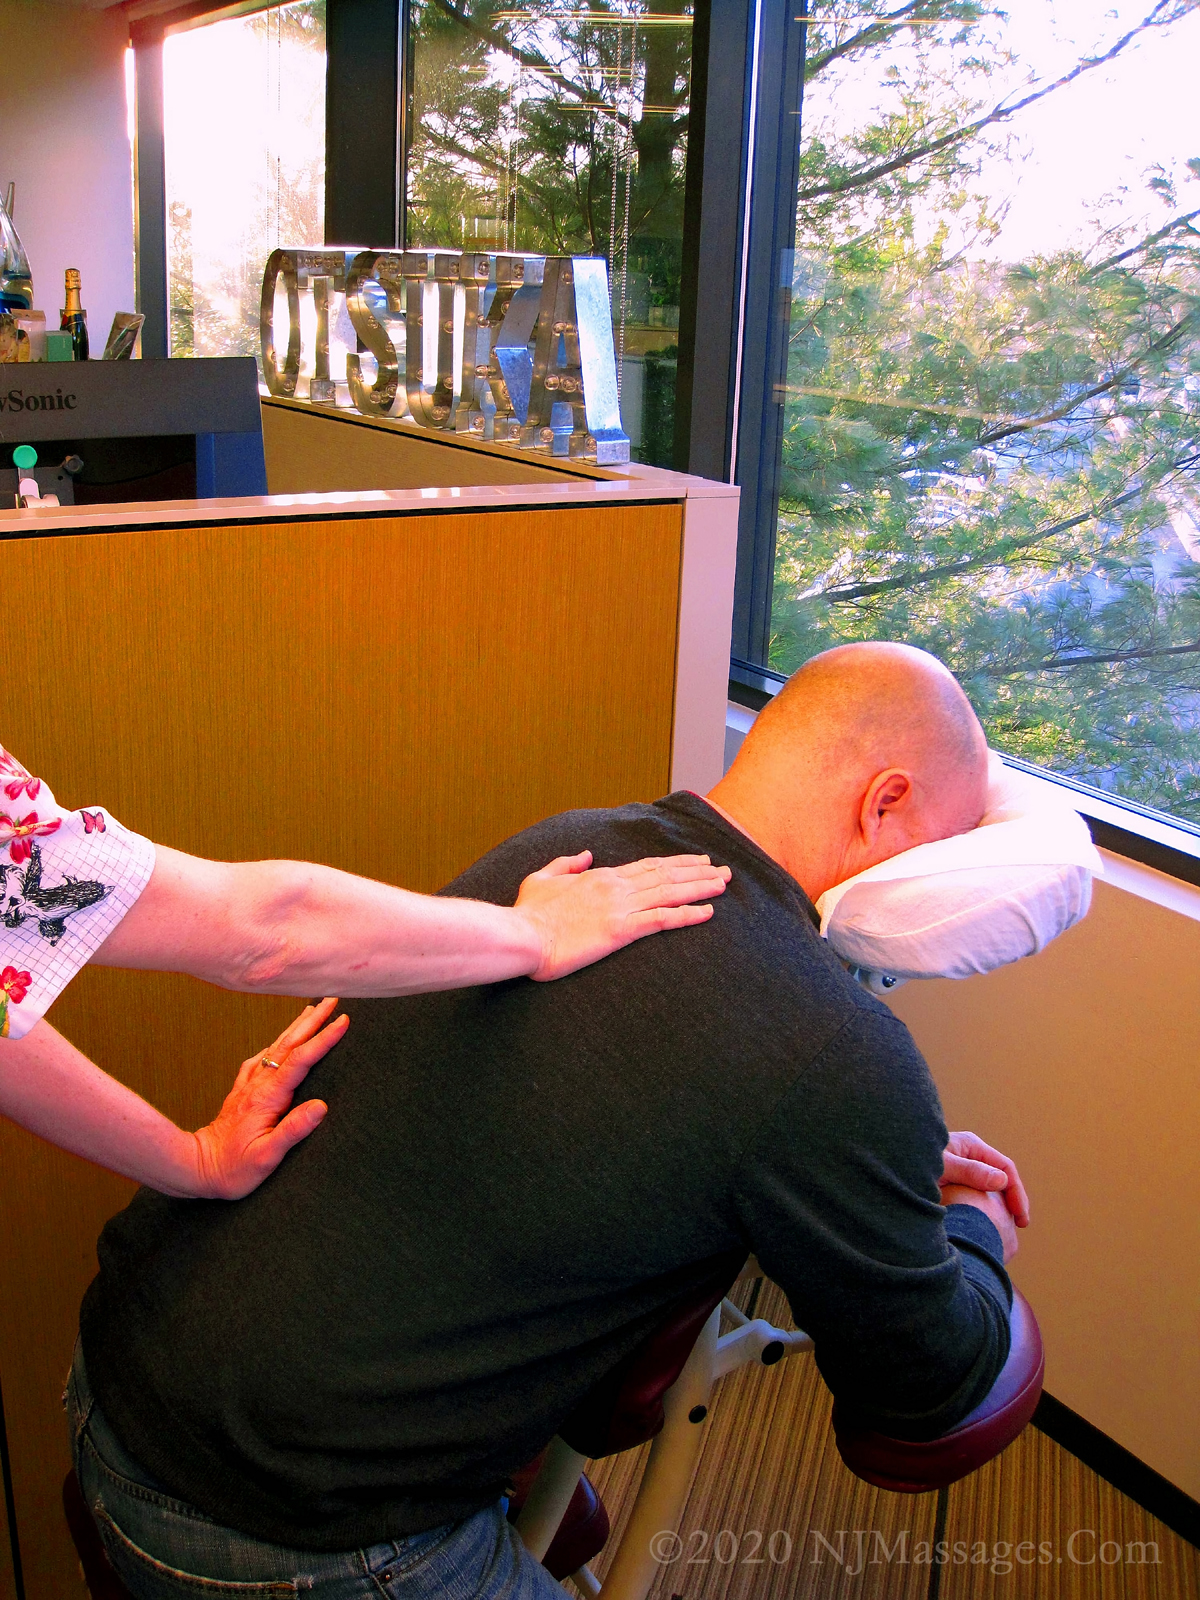 Pharmaceutical Employee Receives Chair Massage